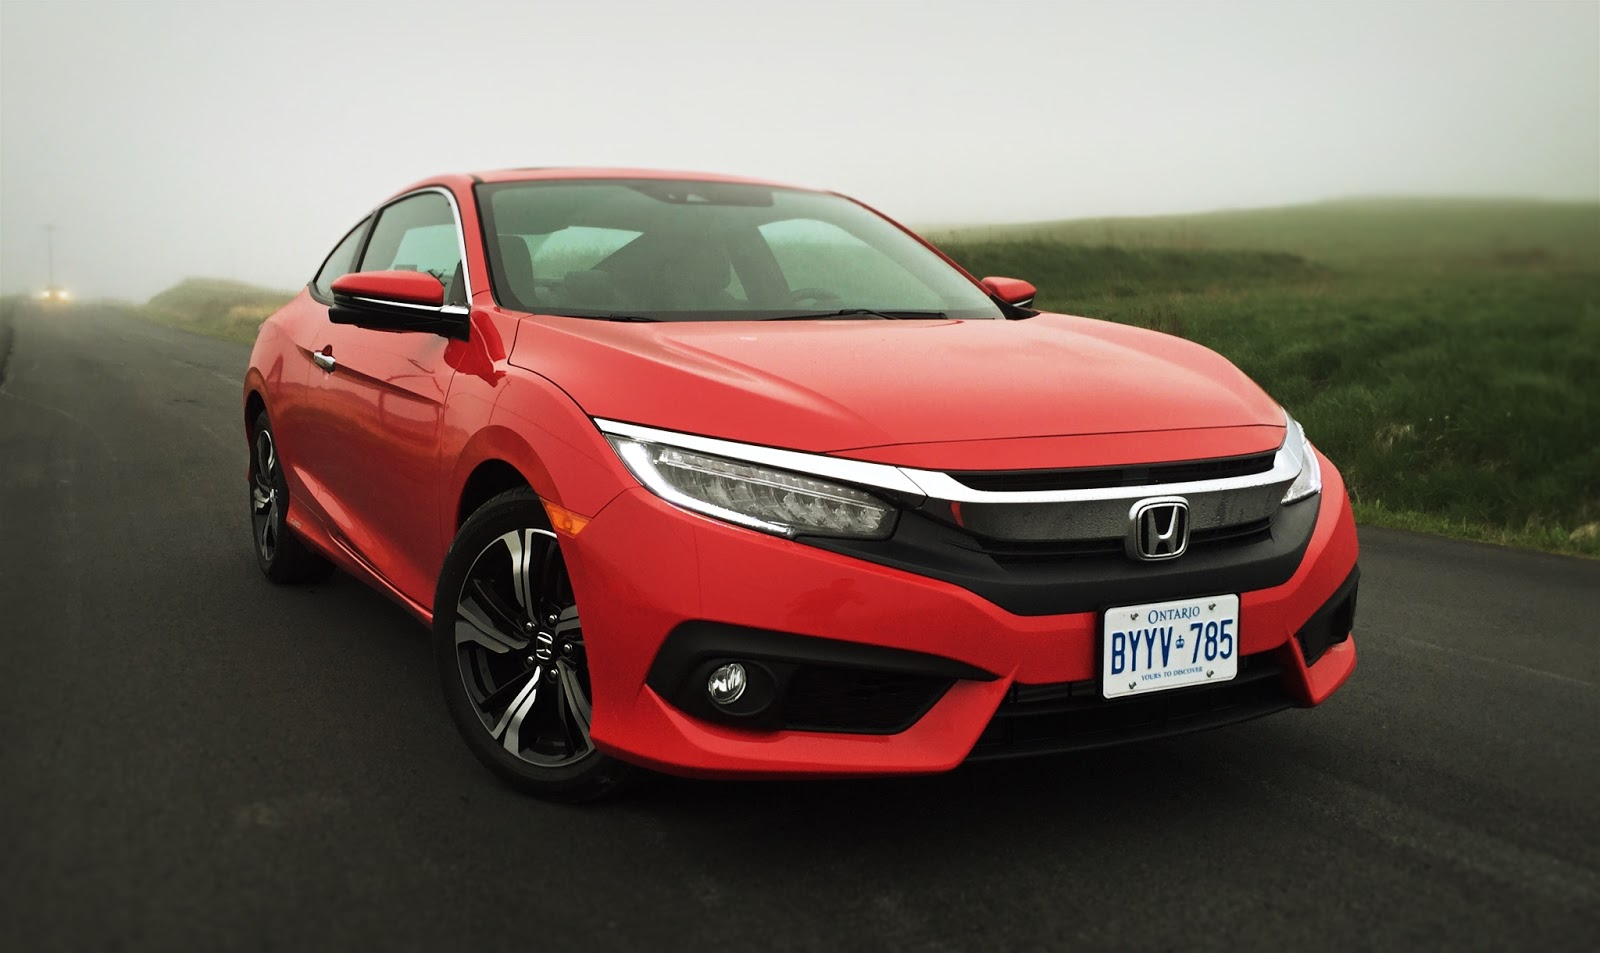 2016 Honda Civic Coupe Rallye Red